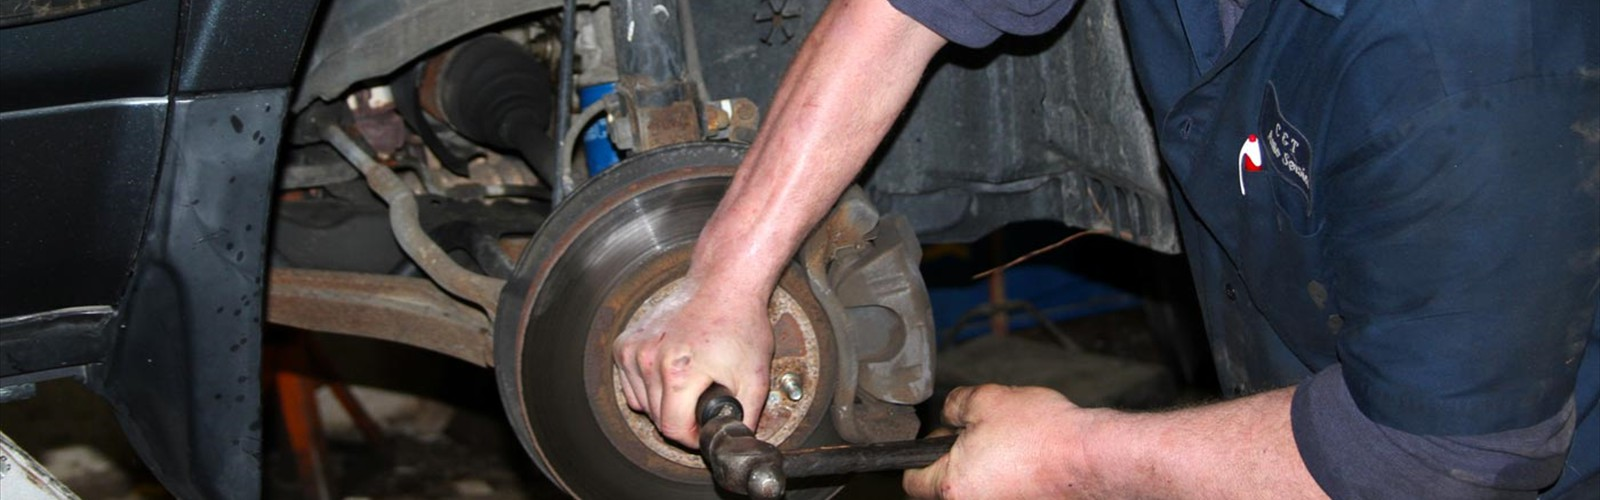 We Offer Affordable Brake Repair